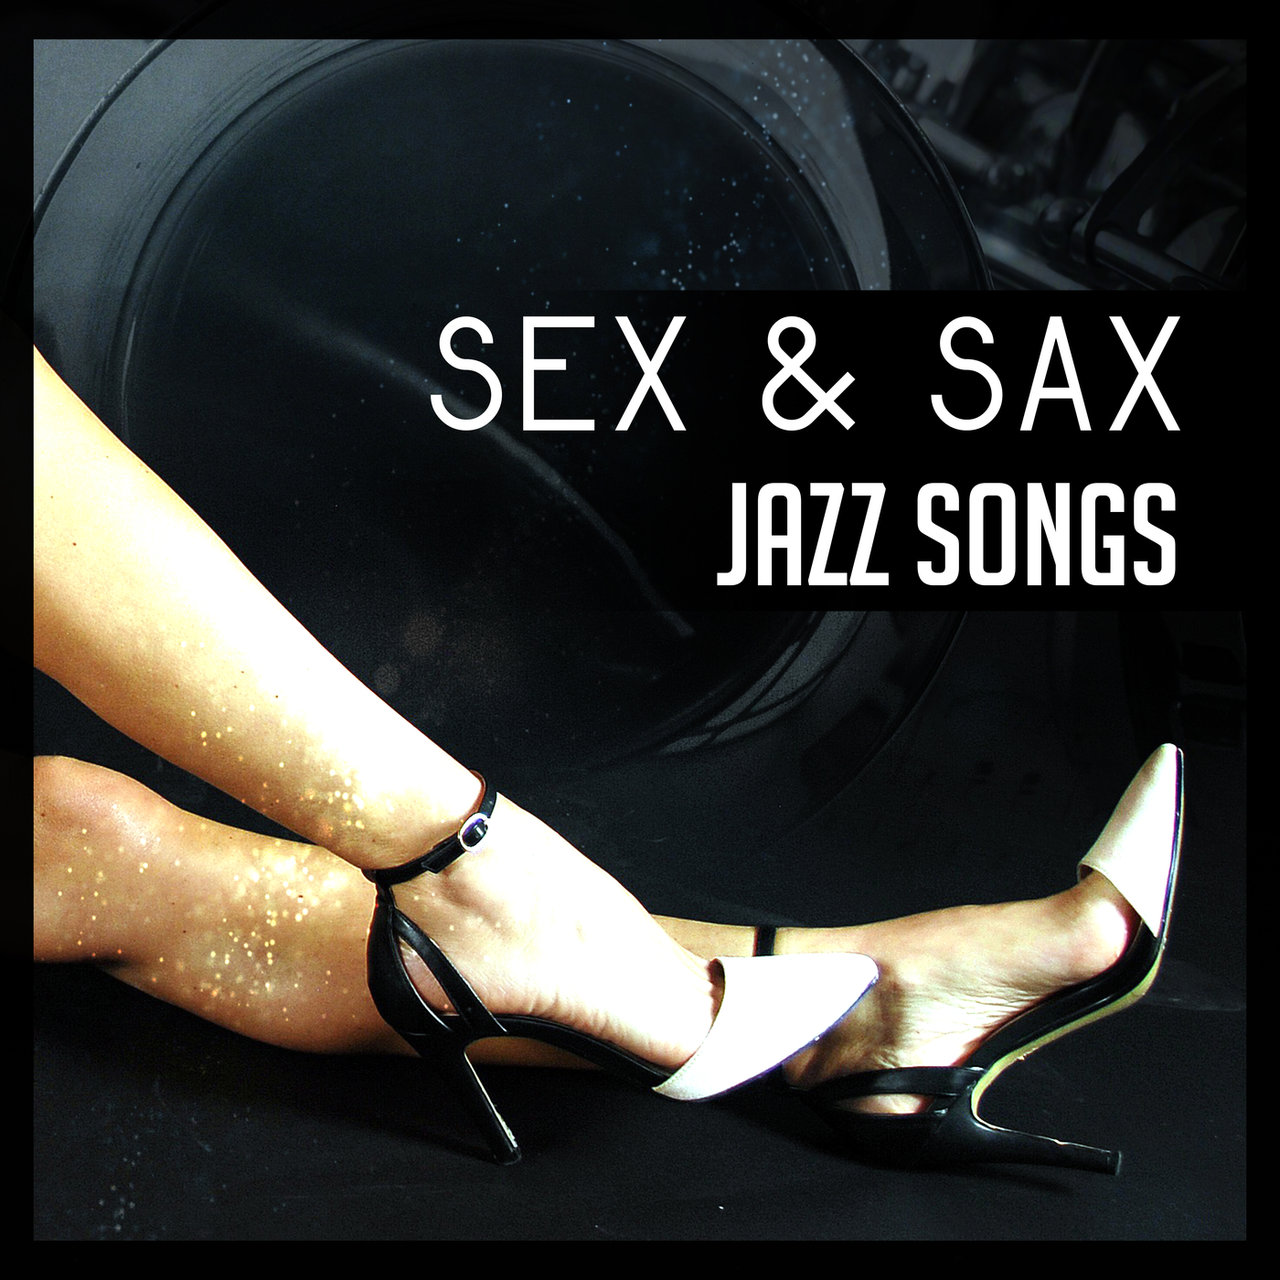 Sex & Sax Jazz Songs – Best Saxophone Melodies, Music for